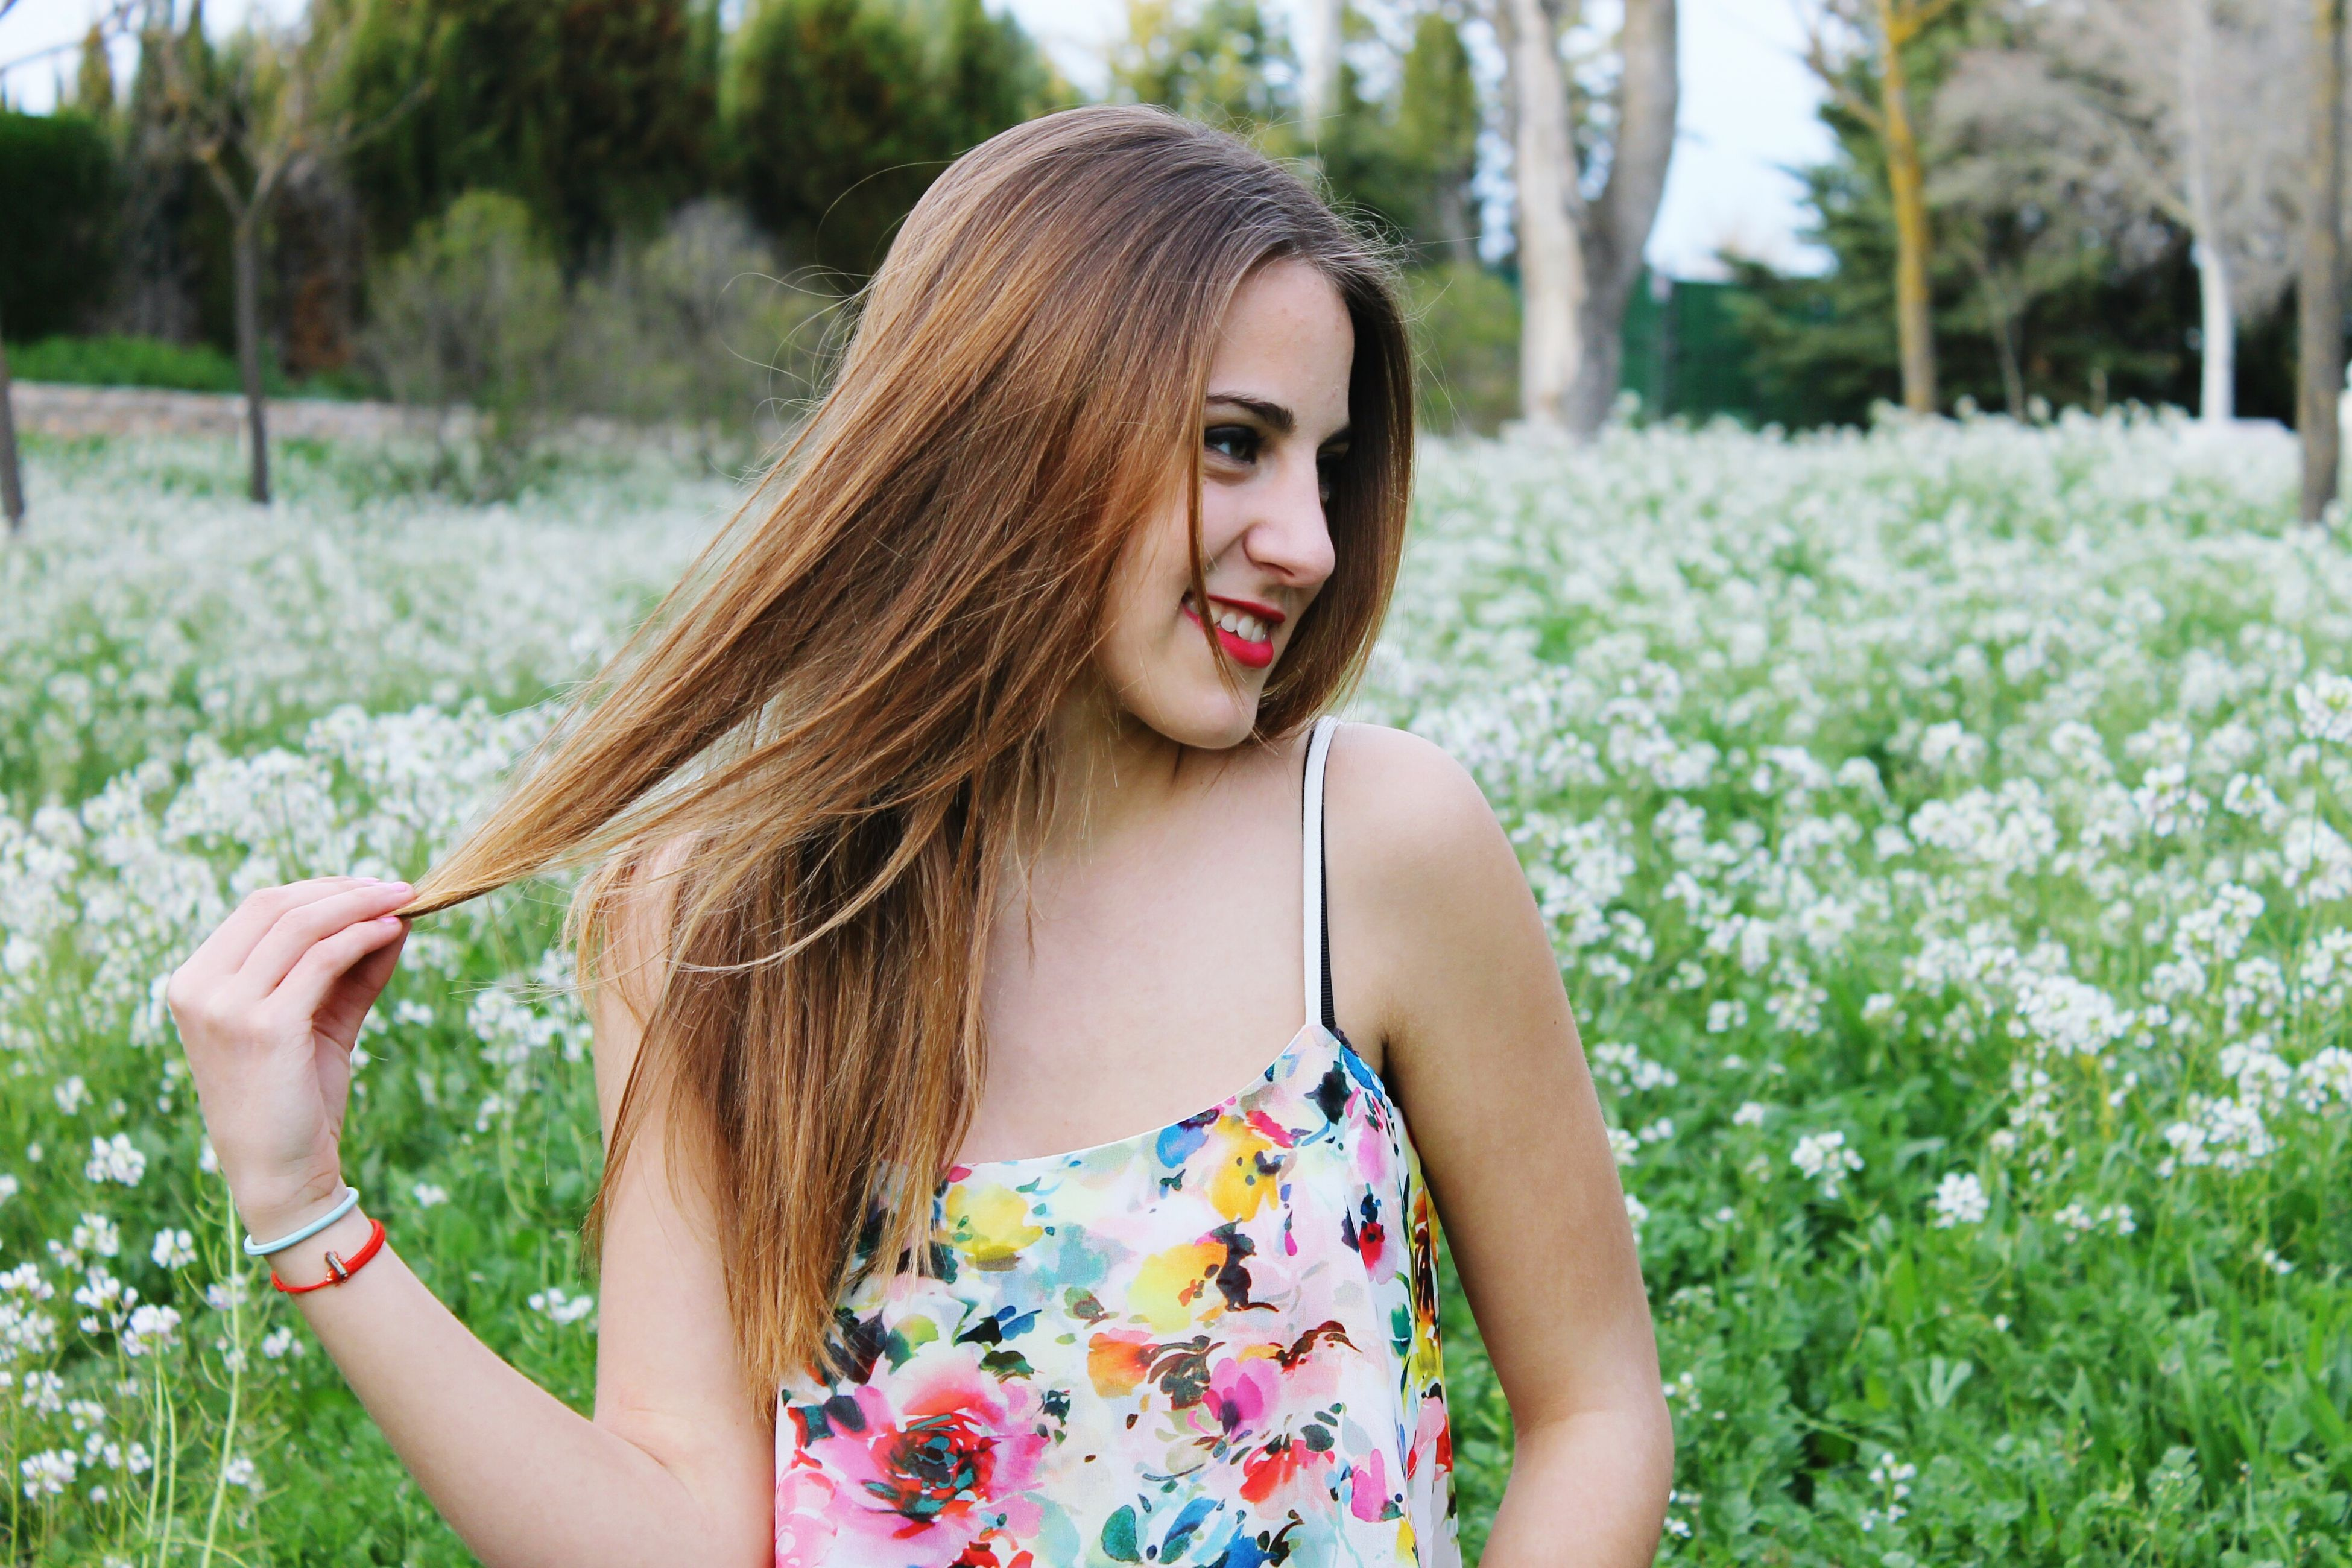 young women, young adult, long hair, person, lifestyles, leisure activity, beauty, portrait, looking at camera, focus on foreground, smiling, front view, brown hair, waist up, medium-length hair, casual clothing, femininity